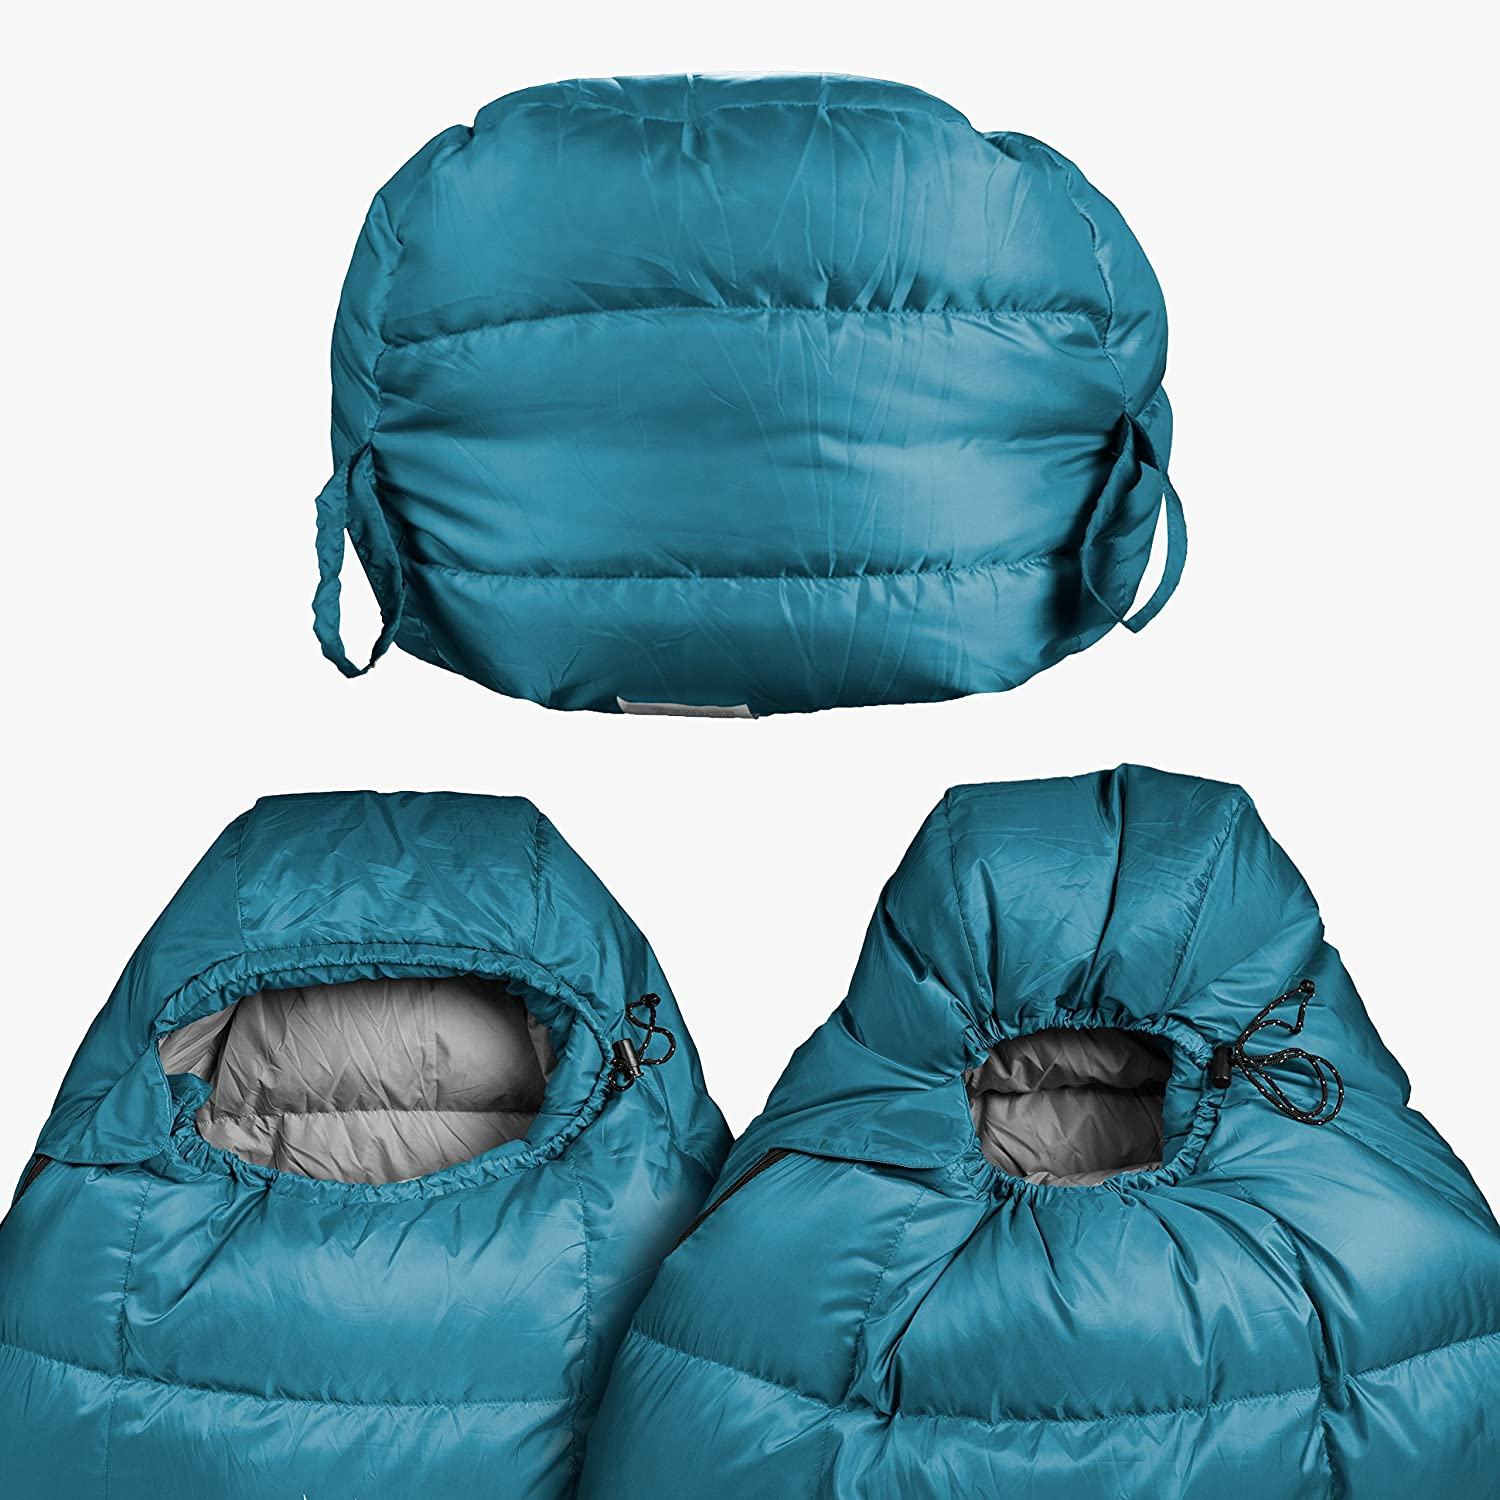 Outdoor Vitals Summit 20°F Down Sleeping Bag, 800 Fill Power, 3 Season, Mummy, Ultralight, Camping, Hiking